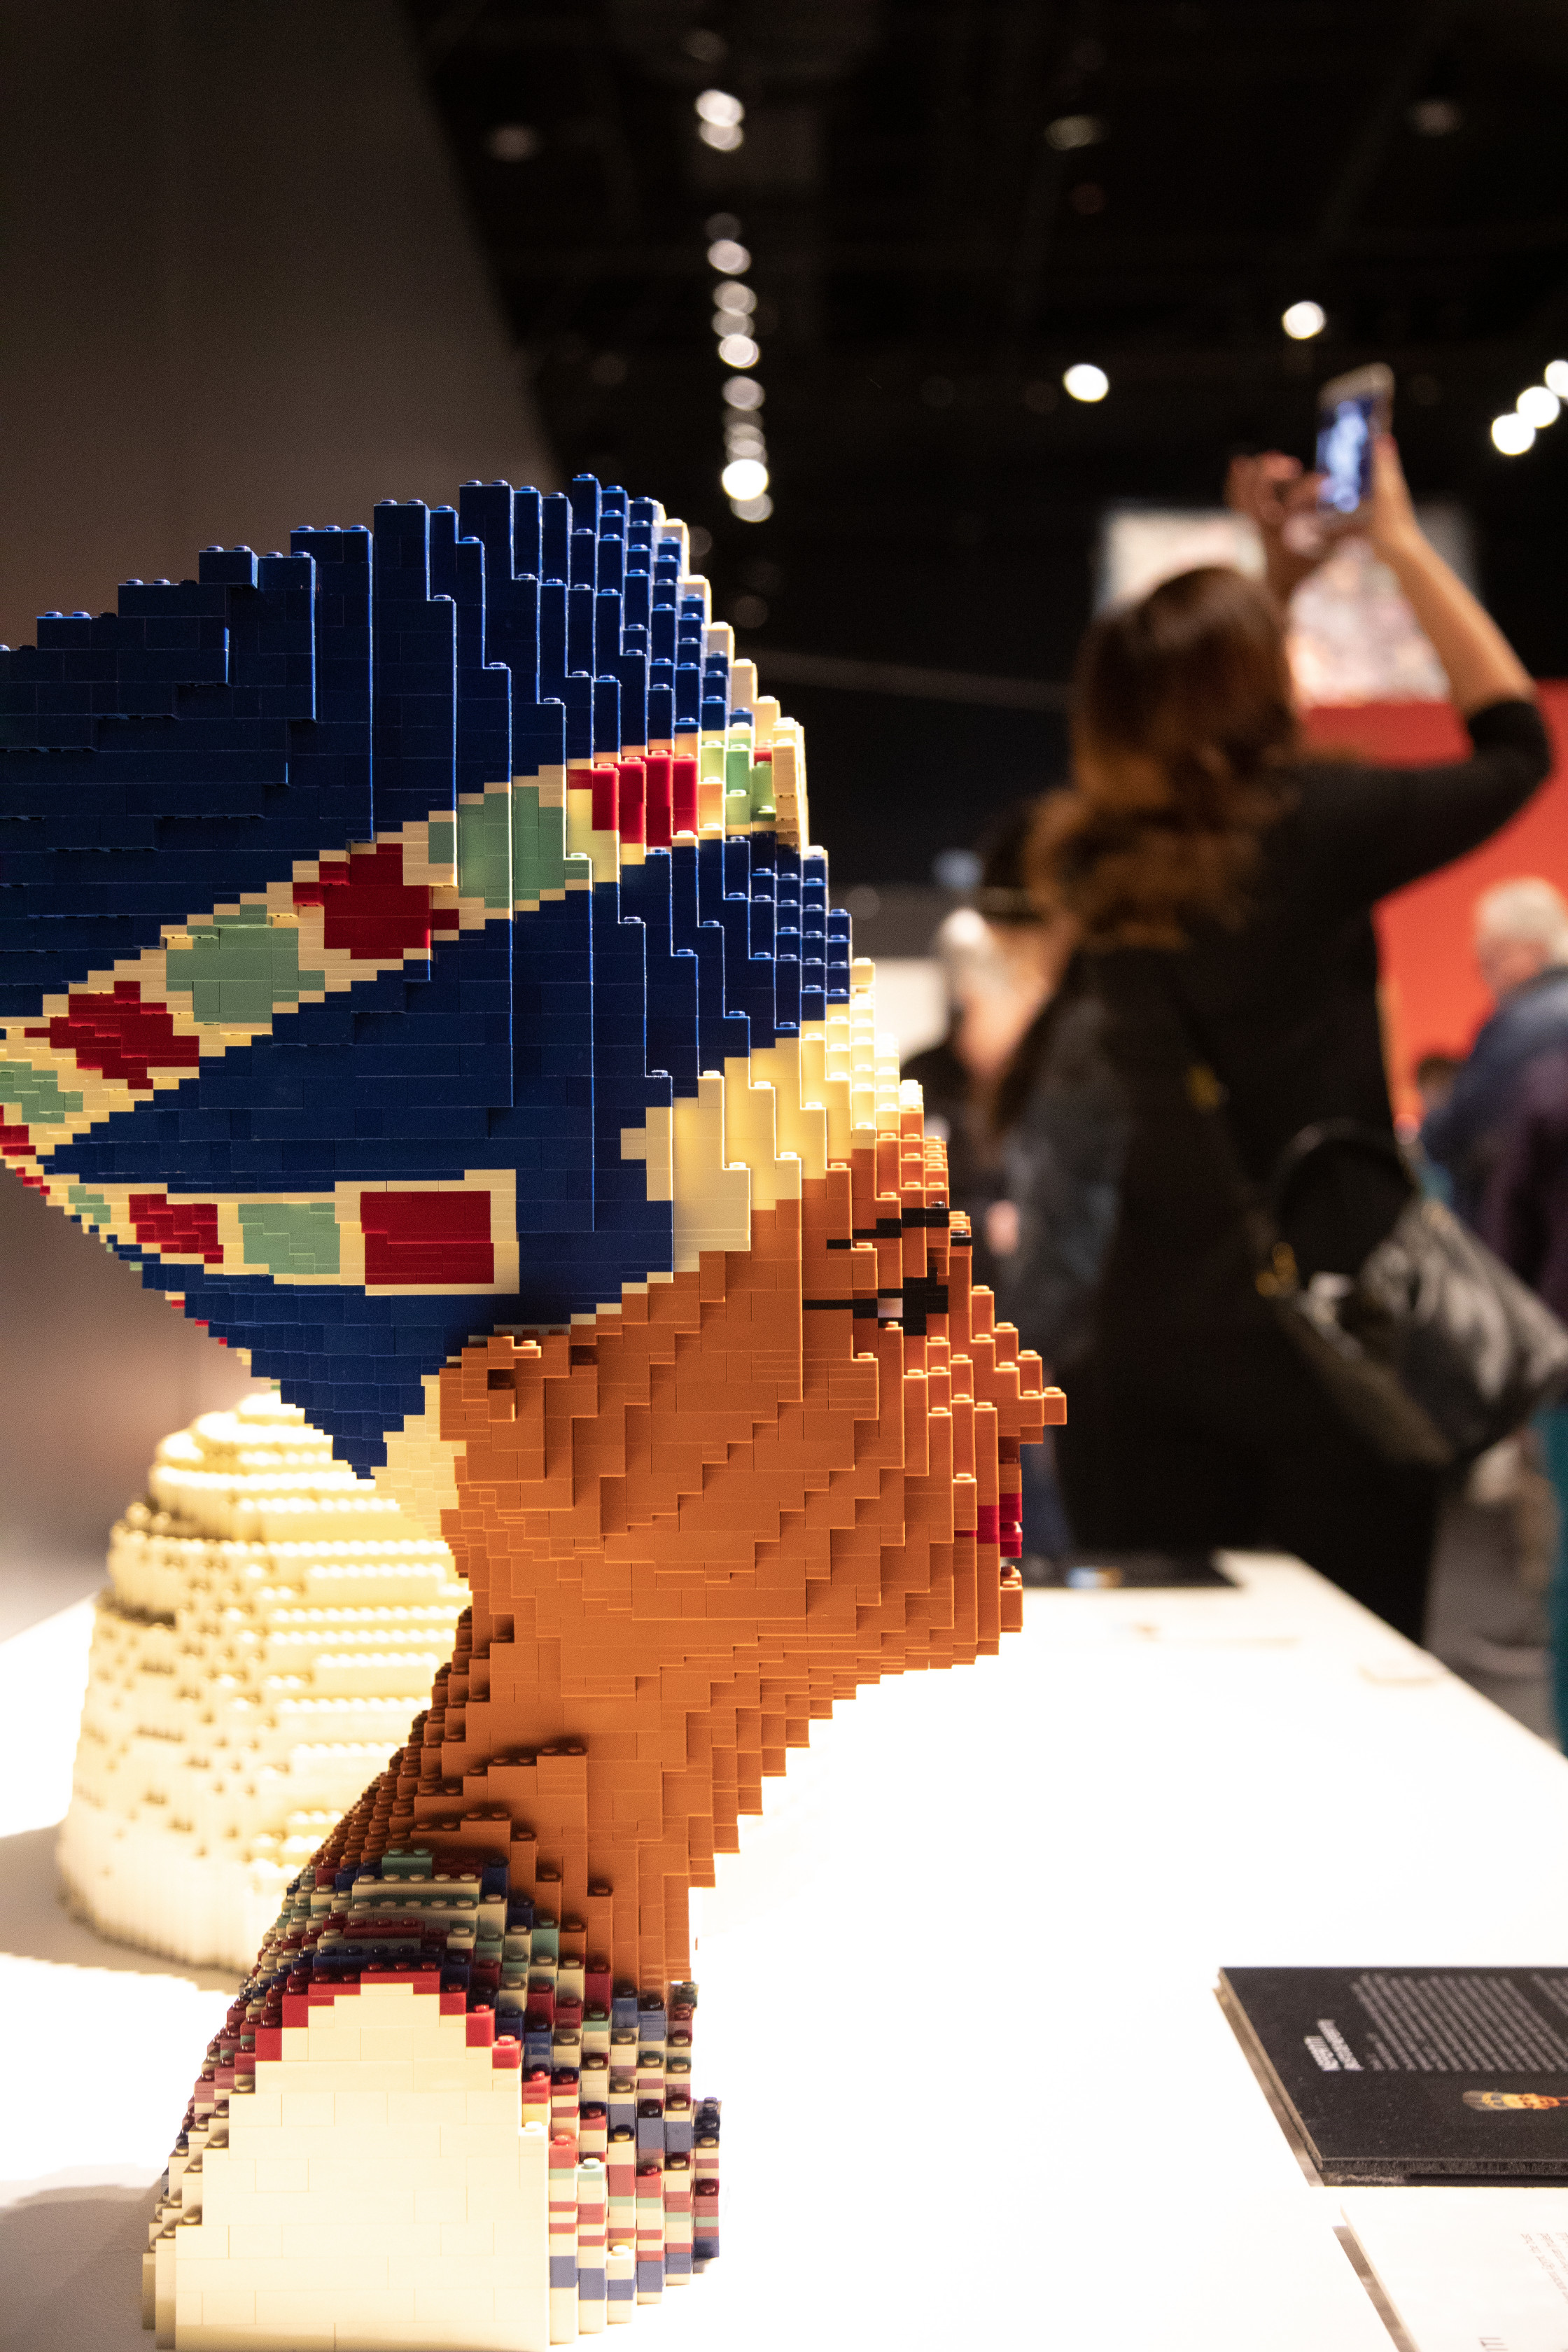 Nefertiti sculpture is one of many recreated art masterpieces featured in The Art of the Brick traveling exhibition (PHOTO CREDIT: JerSean Golatt/Perot Museum of Nature and Science)